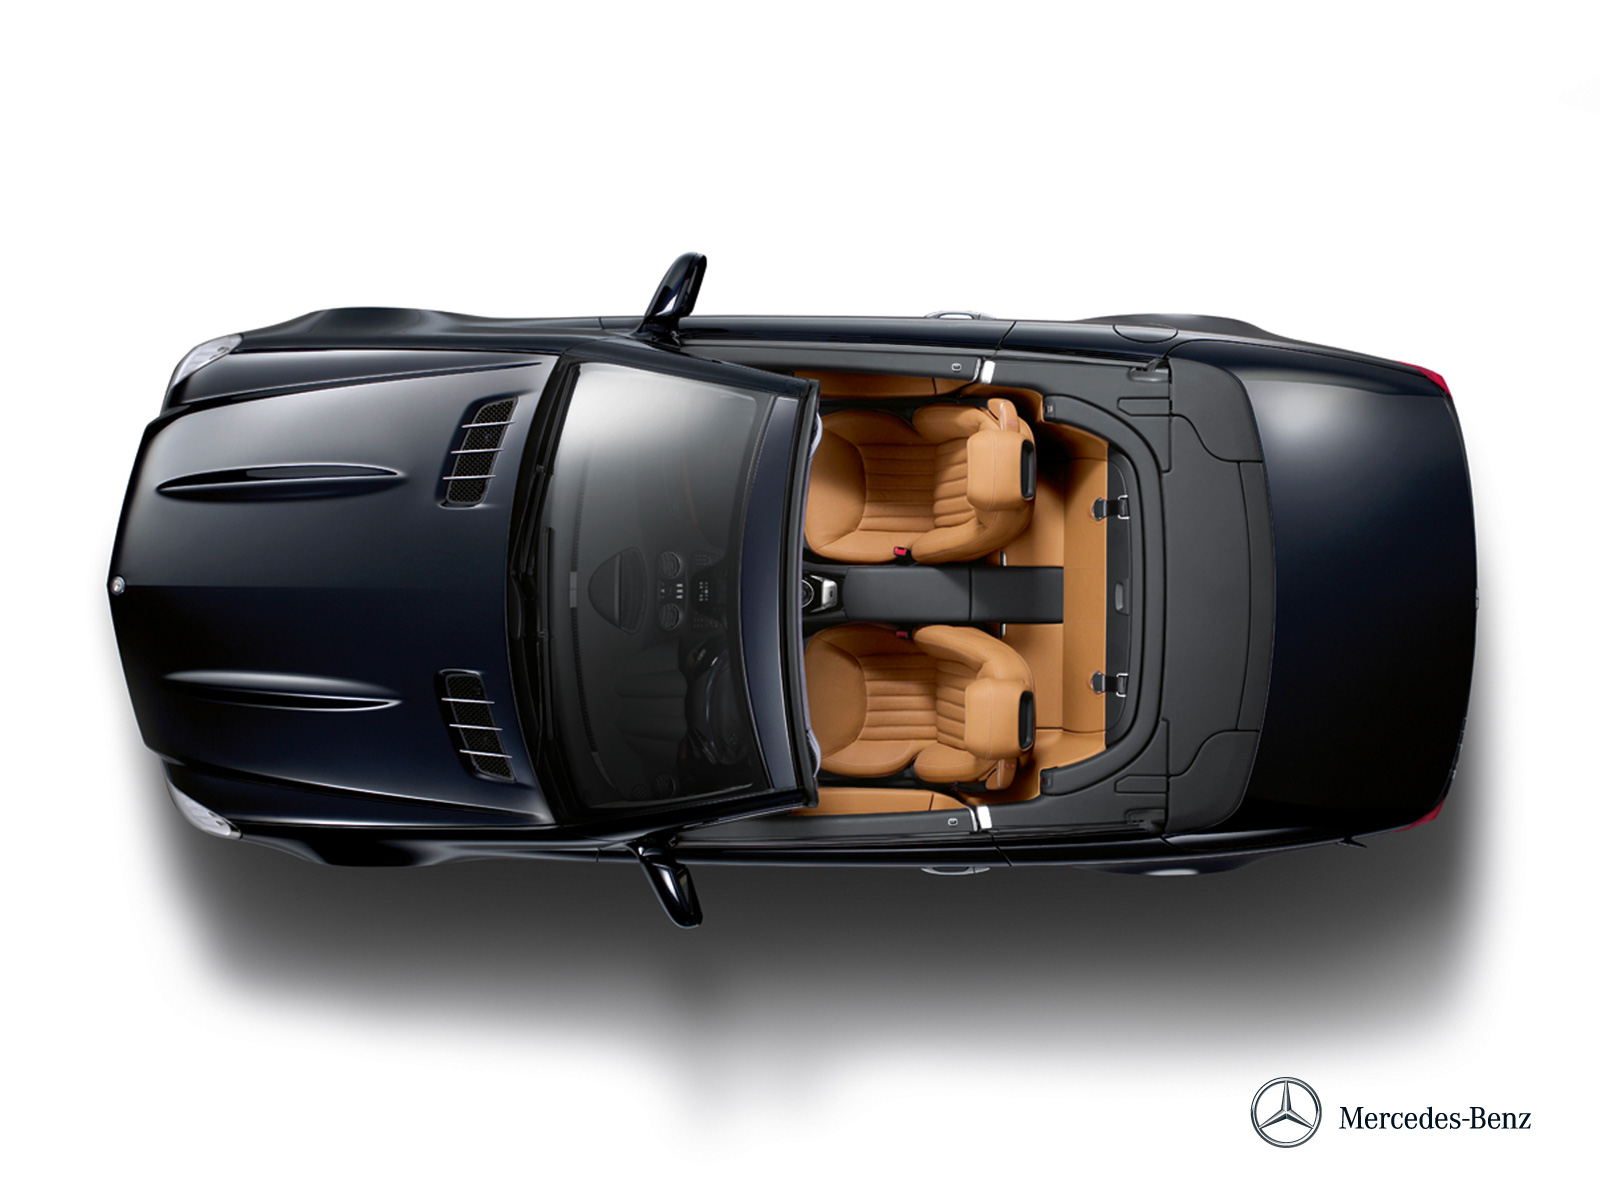 Black Mercedes Benz Top Car Png 34858 Free Icons And